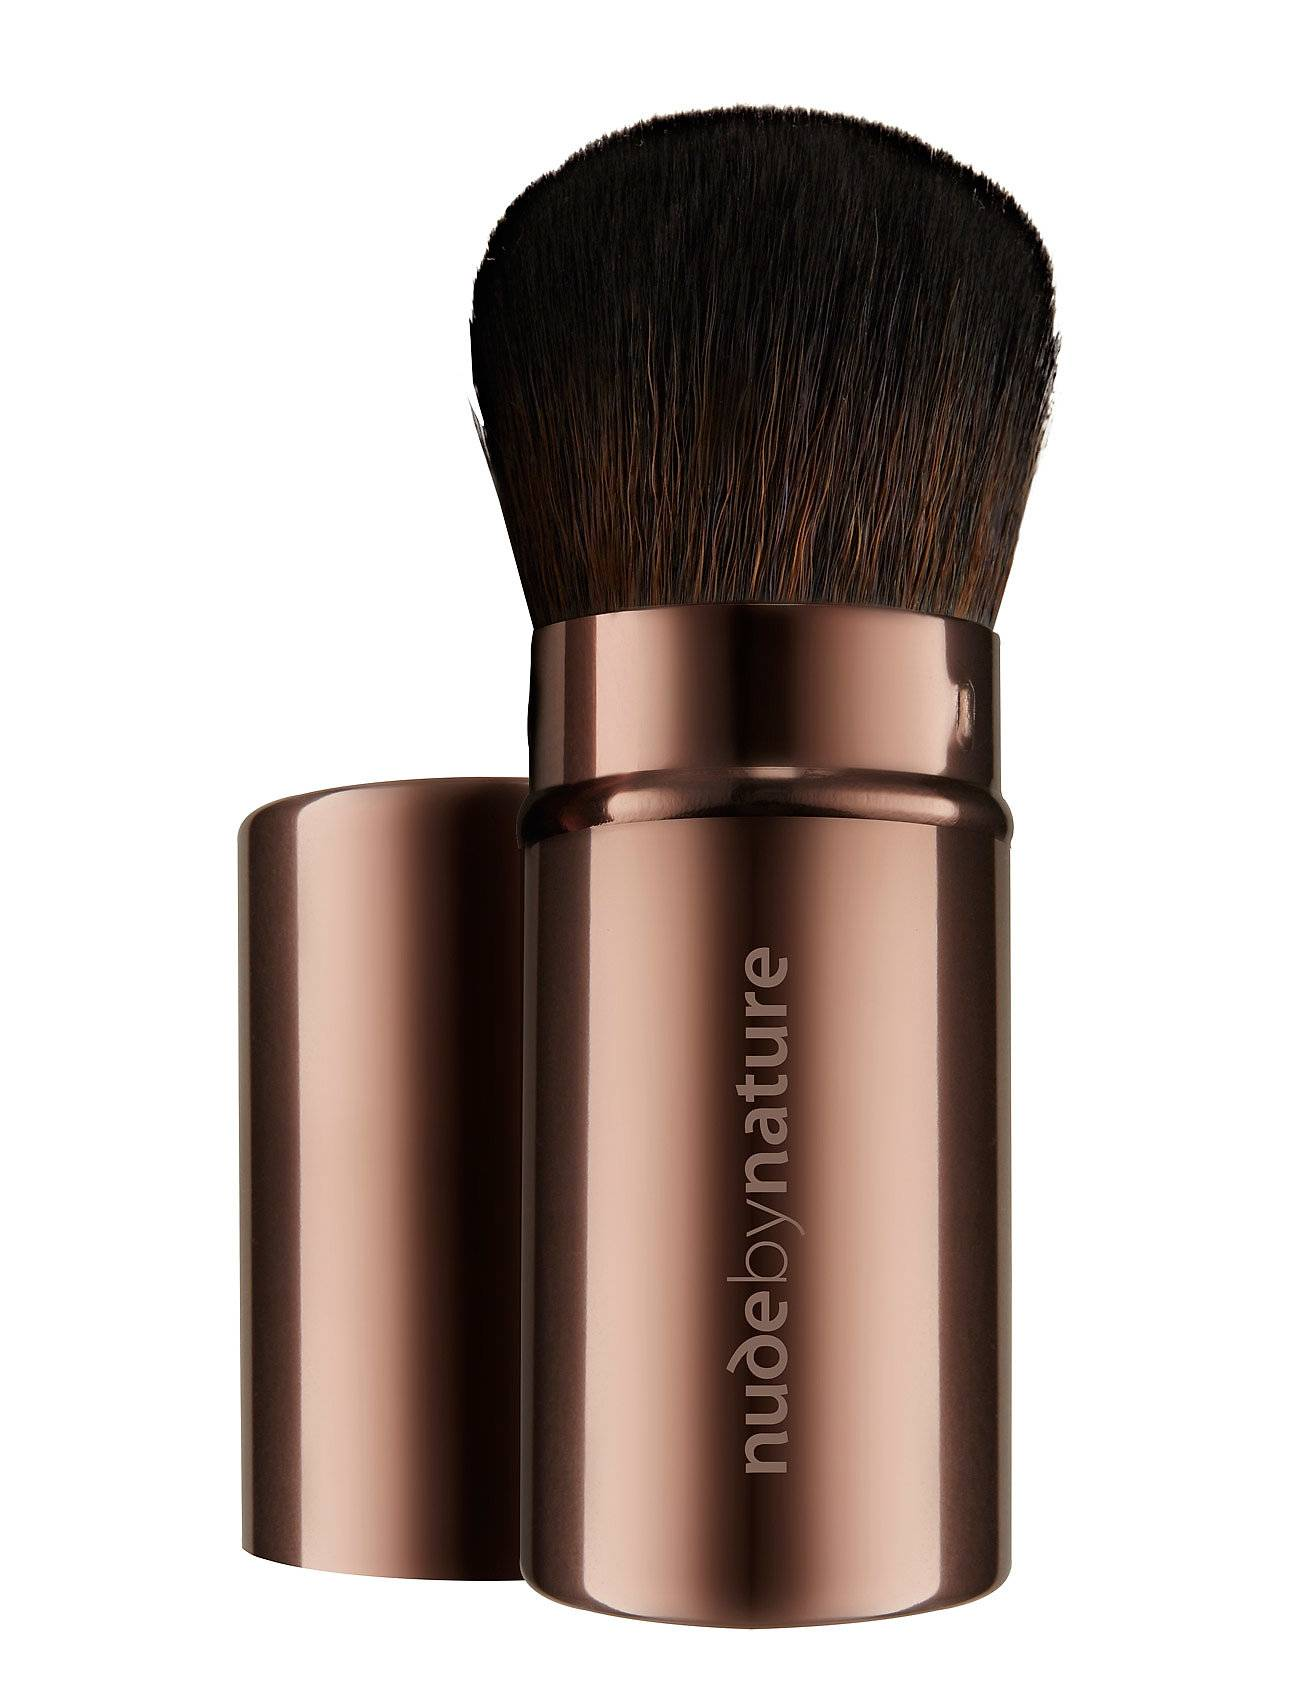 Nude by Nature Brushes 10 Travel Brush Beauty WOMEN Makeup Makeup Brushes Face Brushes Nude Nude By Nature